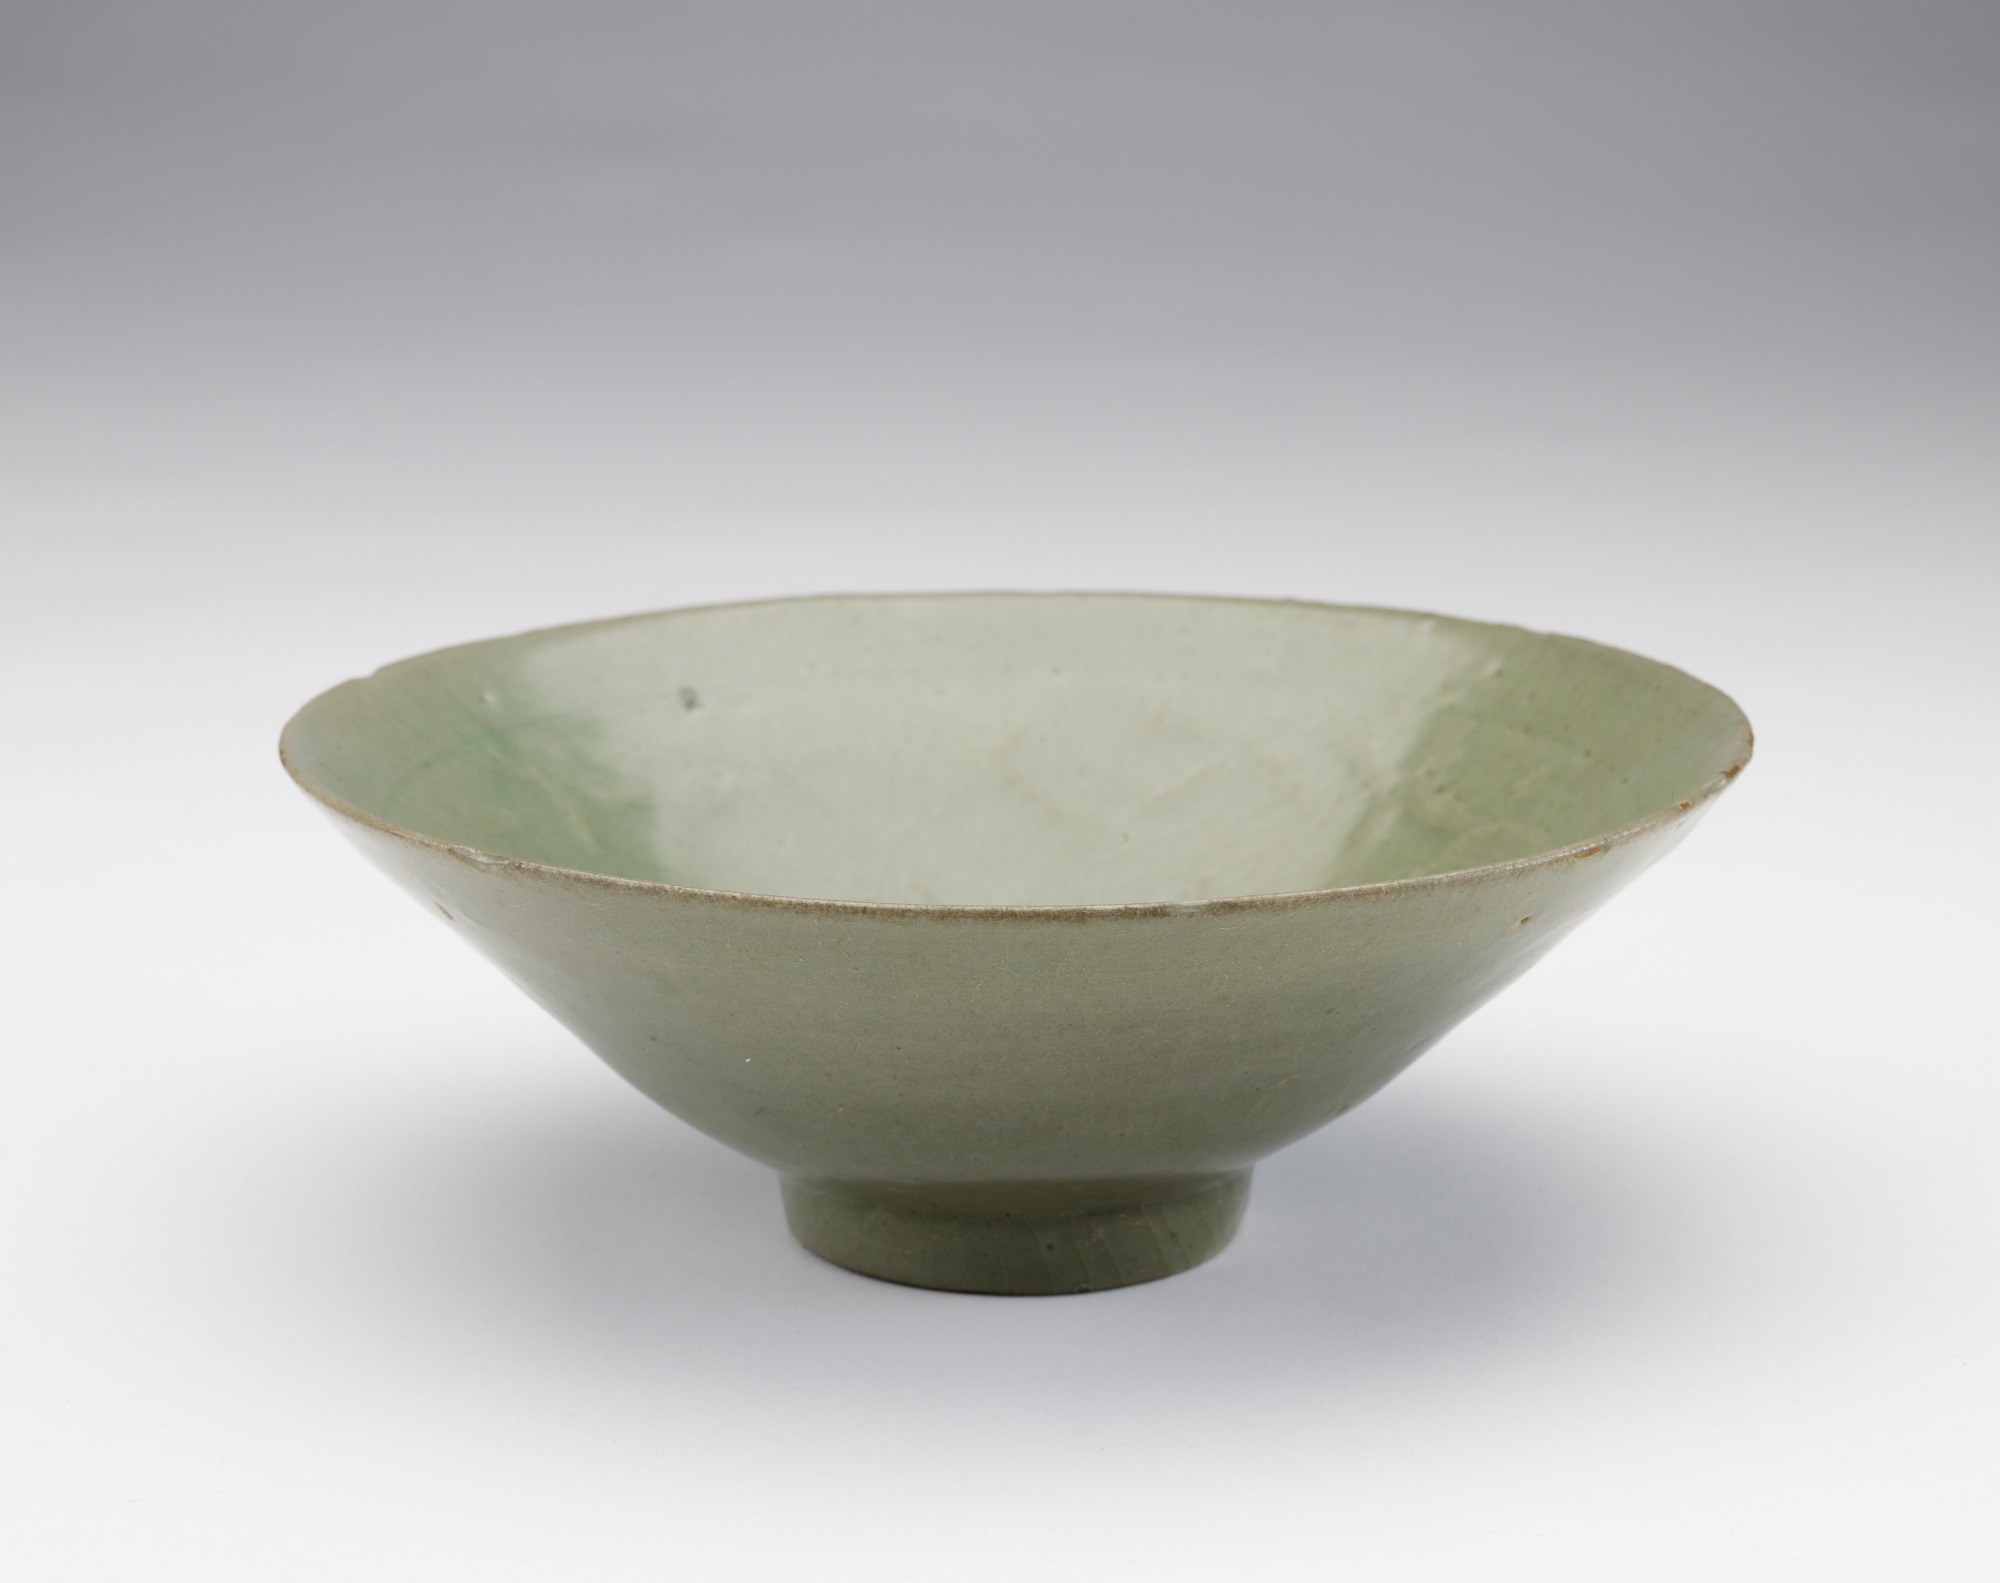 Bowl with molded and incised design of hibiscus flowers, 3/4 profile